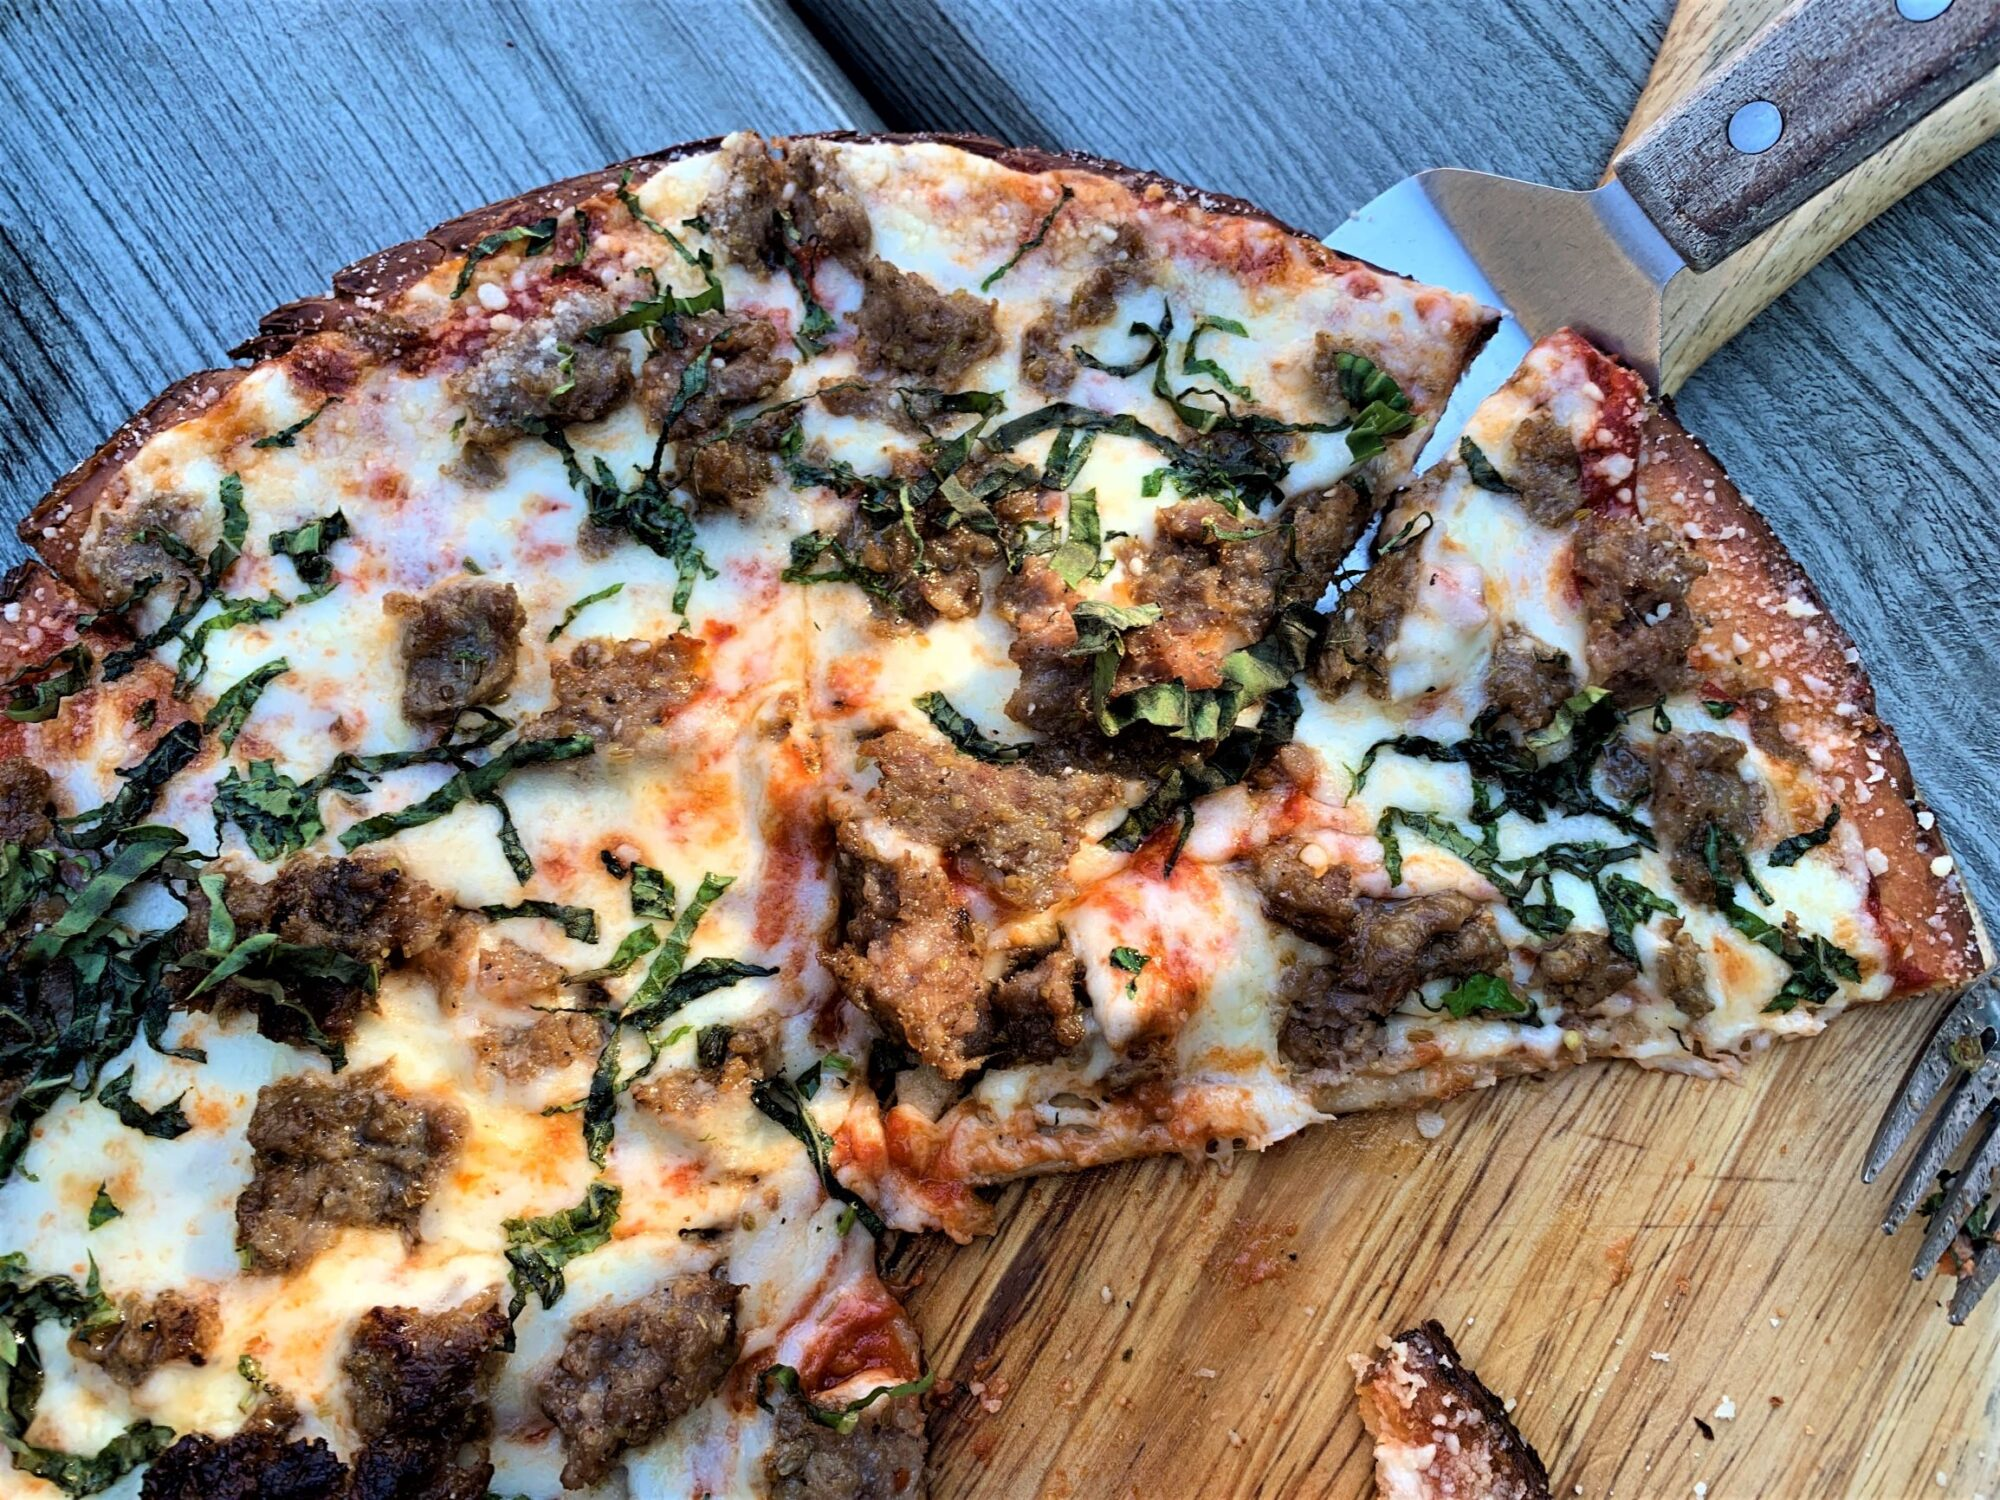 Stone Fired Pizza on Cauliflower Crust from 127 Social House